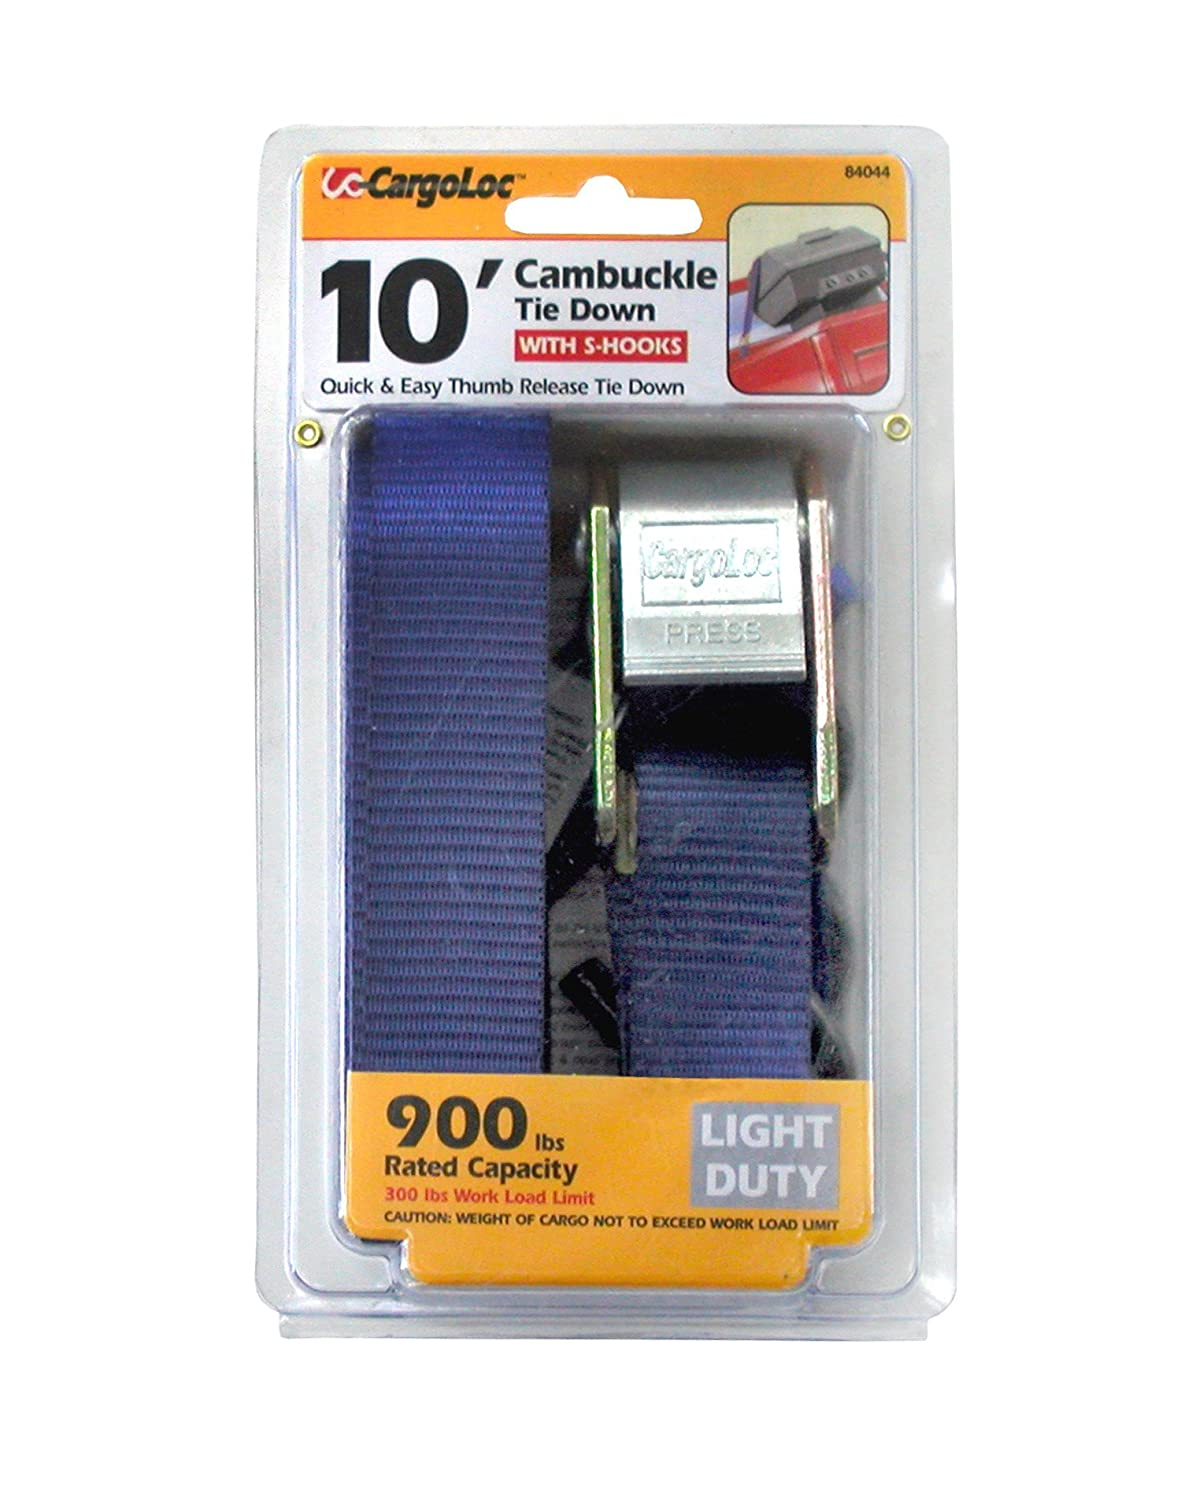 CargoLoc 84044 Cambuckle Tie Downs with S-Hooks, Compact, 1-Inch x 10-Inch